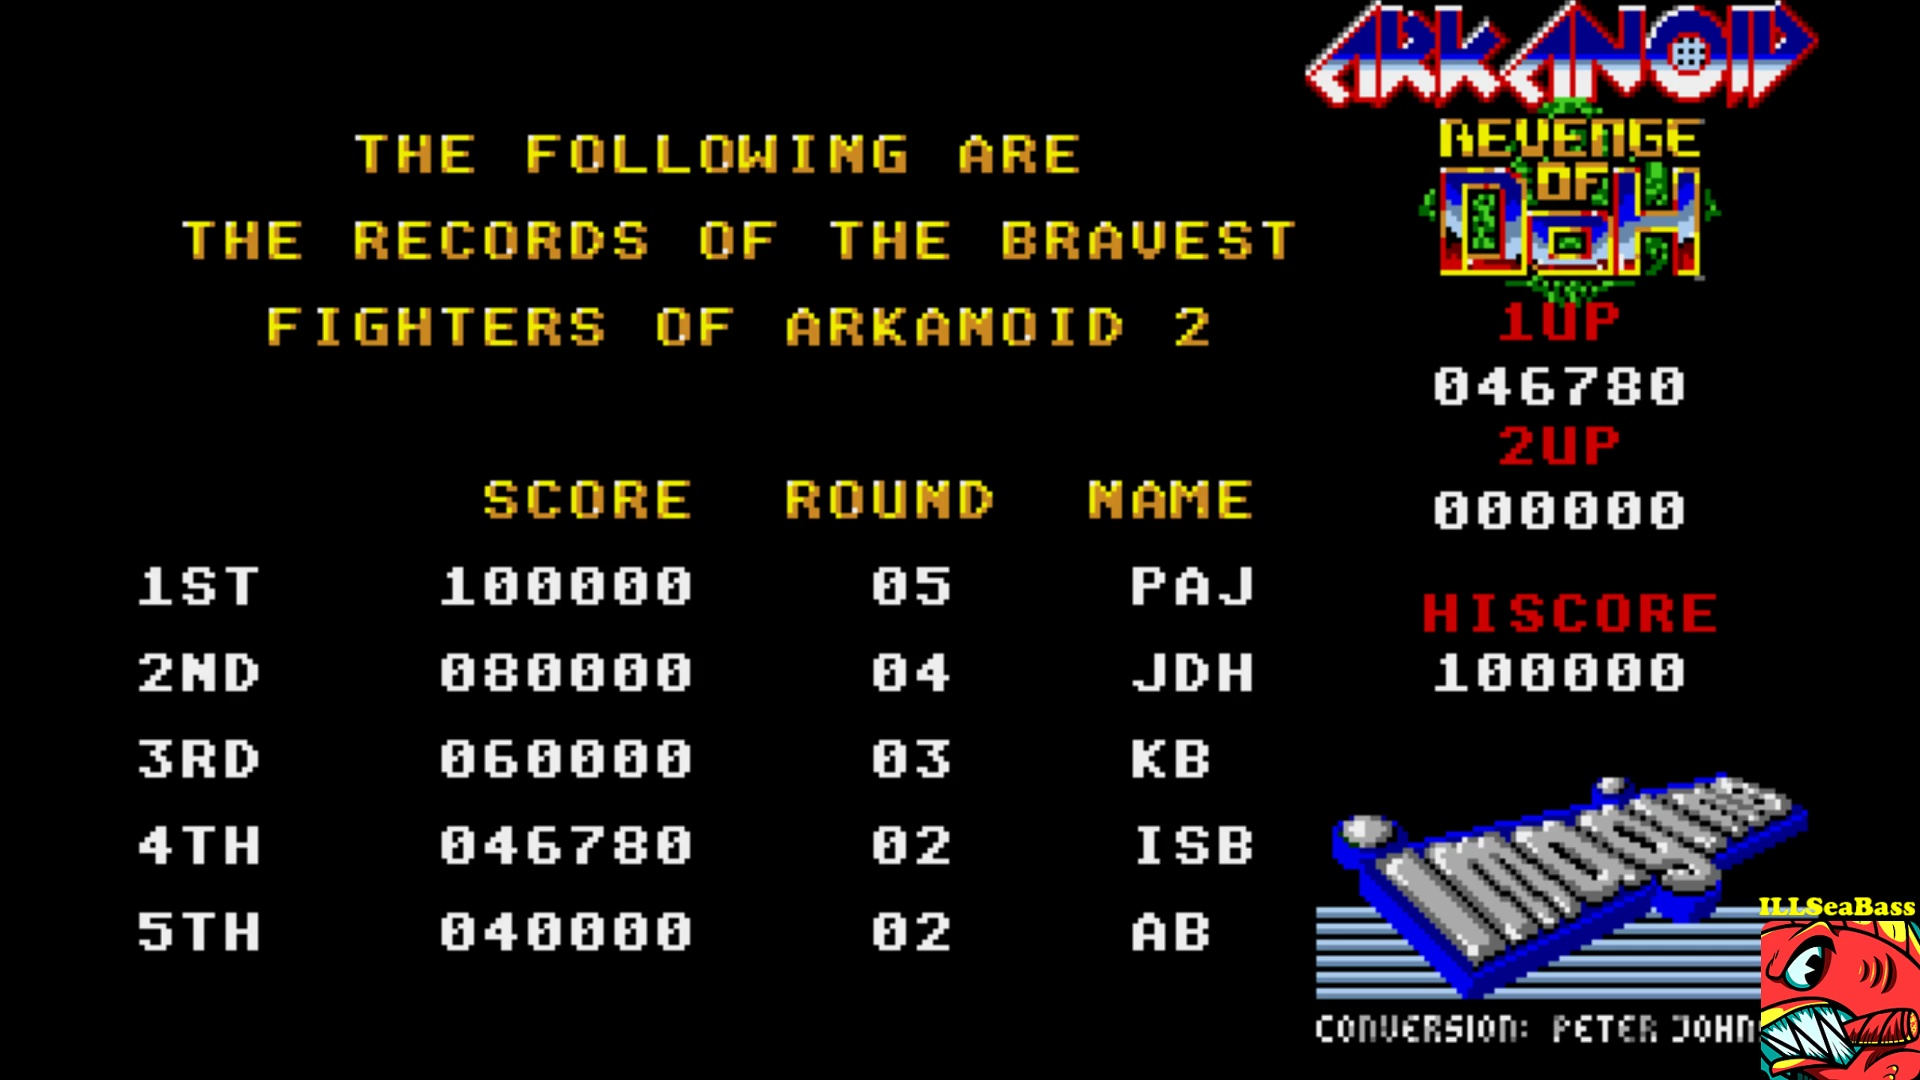 ILLSeaBass: Arkanoid: Revenge of Doh (Amiga Emulated) 46,780 points on 2017-10-29 01:38:58